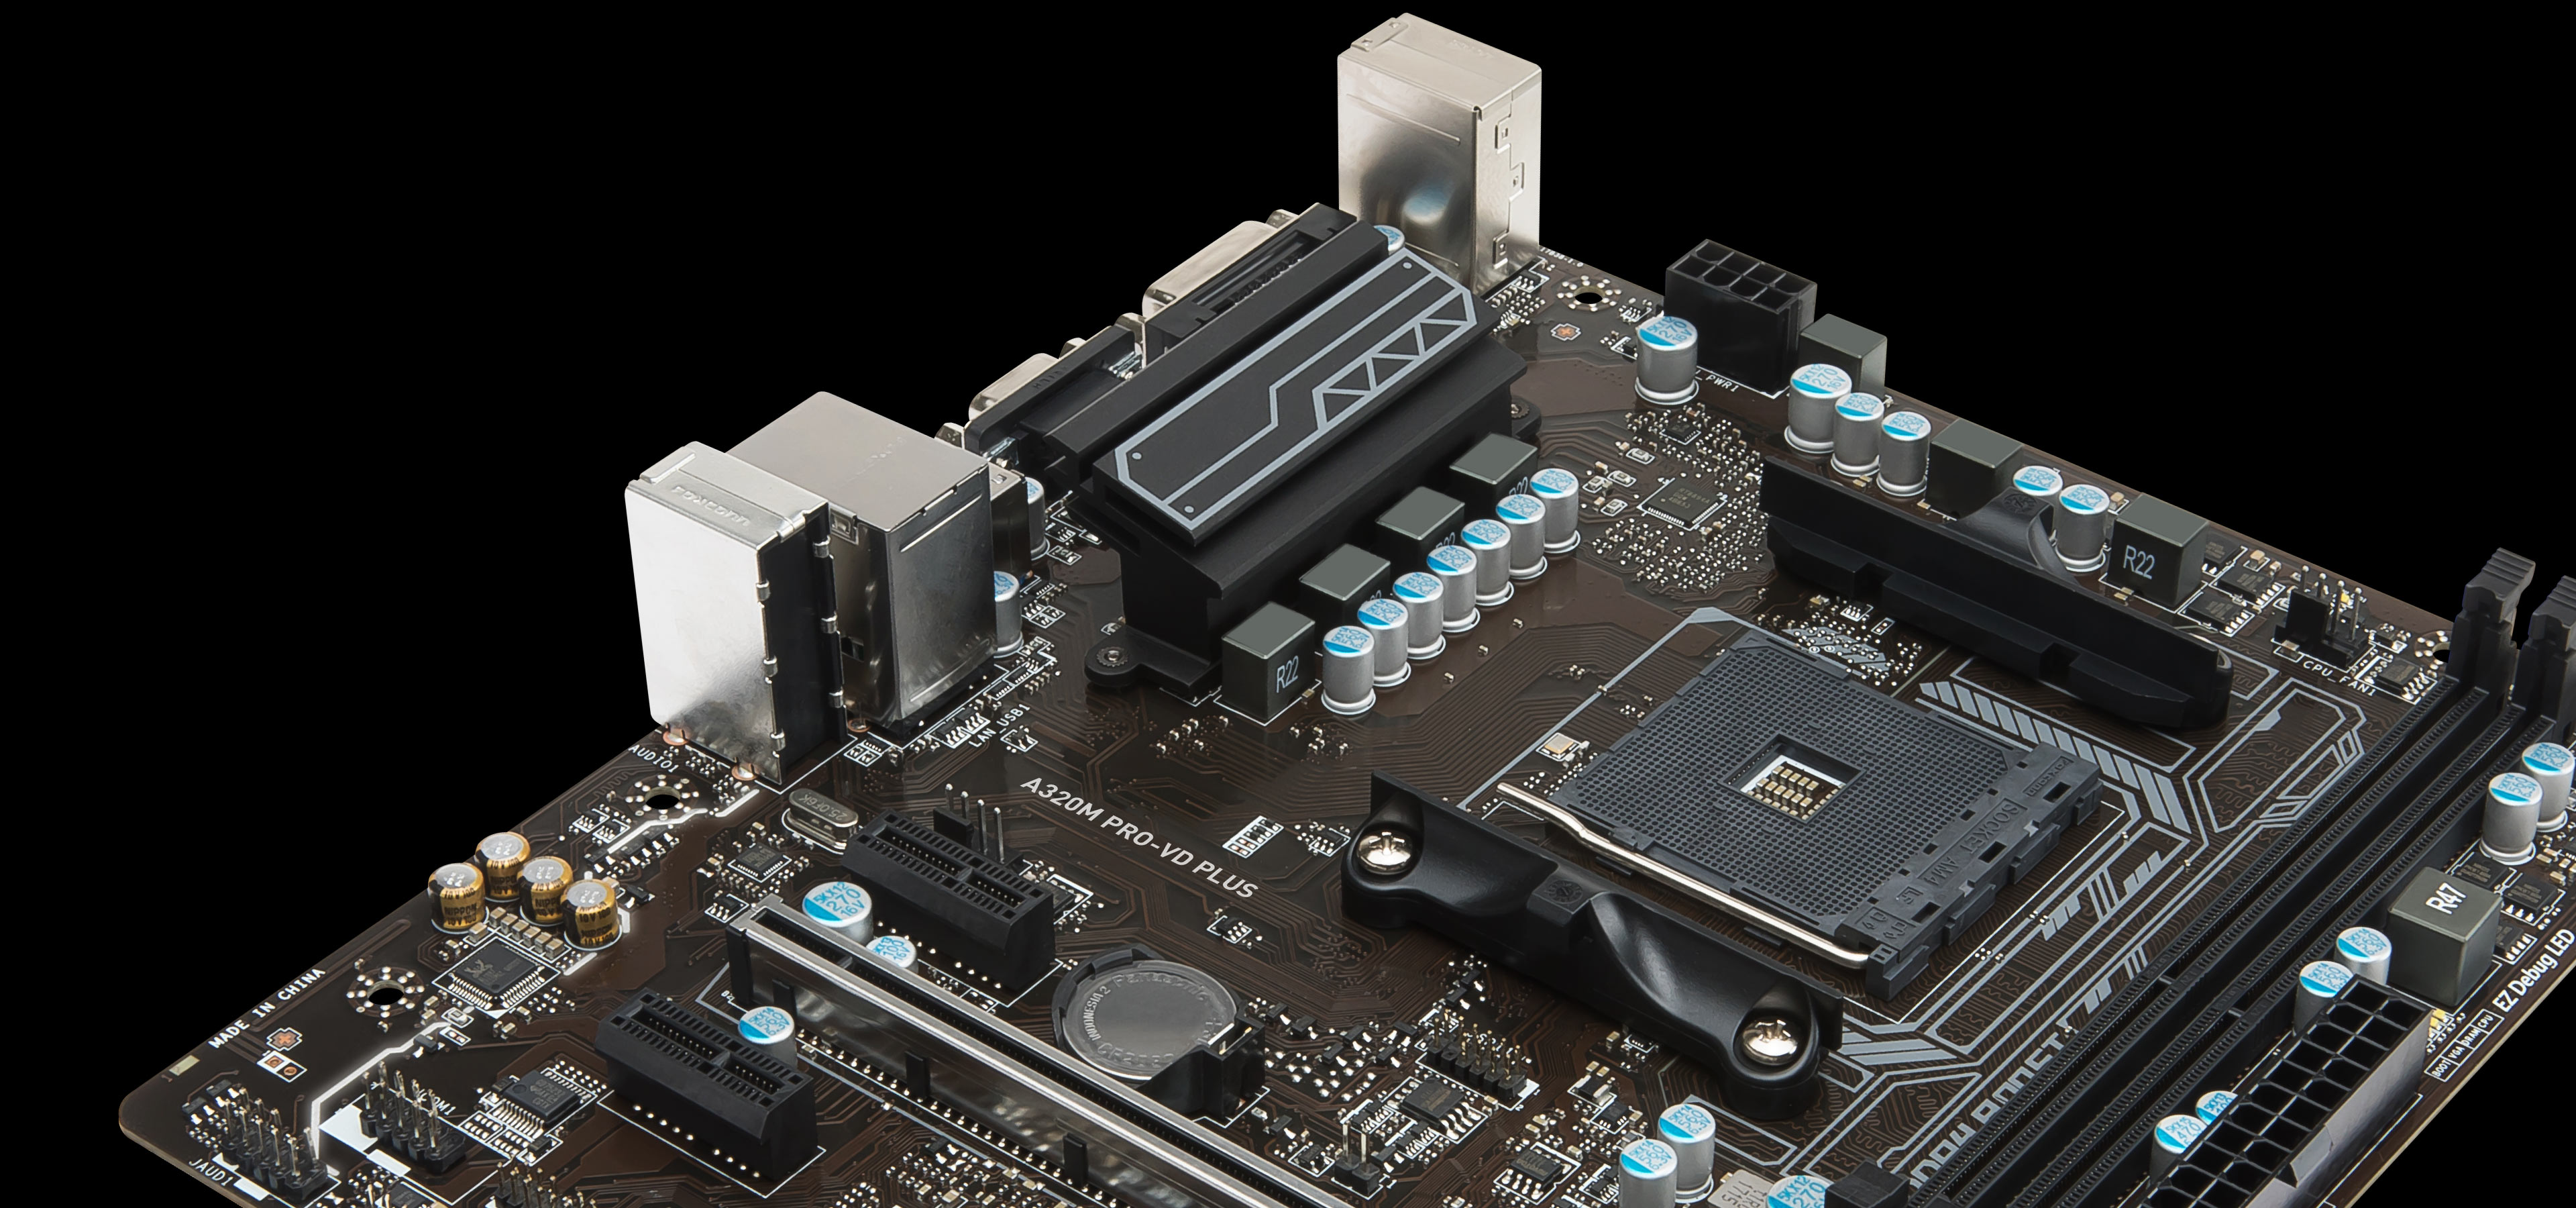 A320m Pro Vd Plus Motherboard The World Leader In Pin Atx Diagram On Pinterest Stay Cool